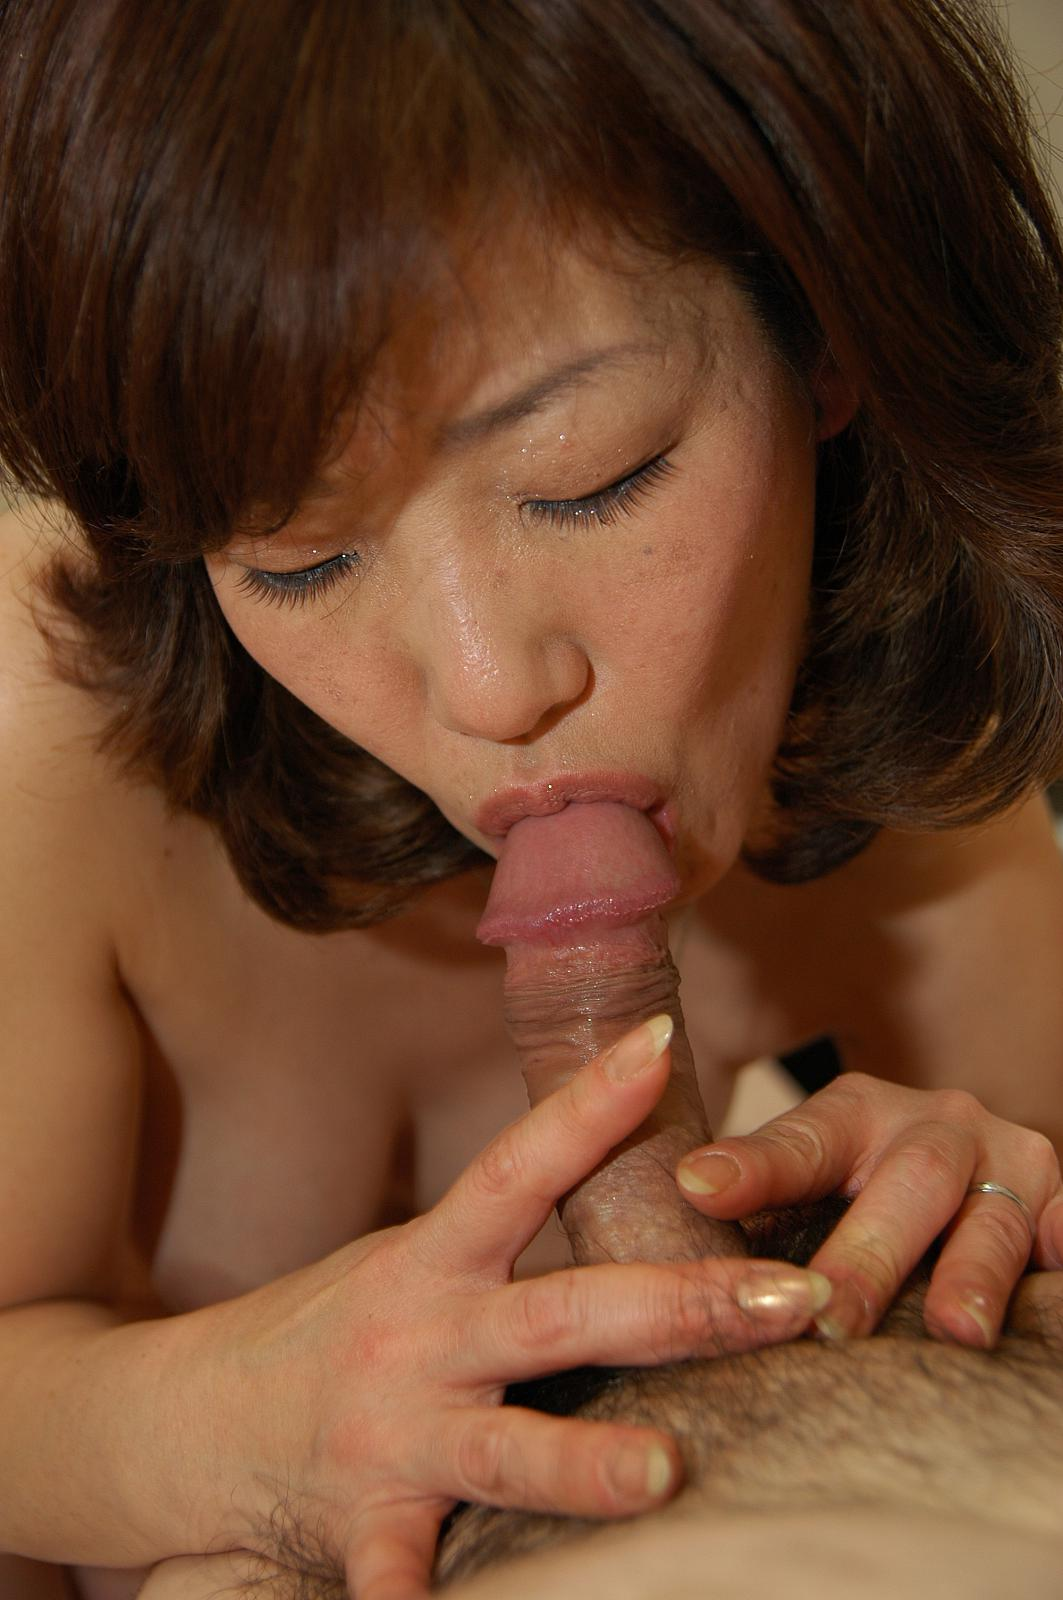 Assured, japanese mature lady sex long sex pictures regret